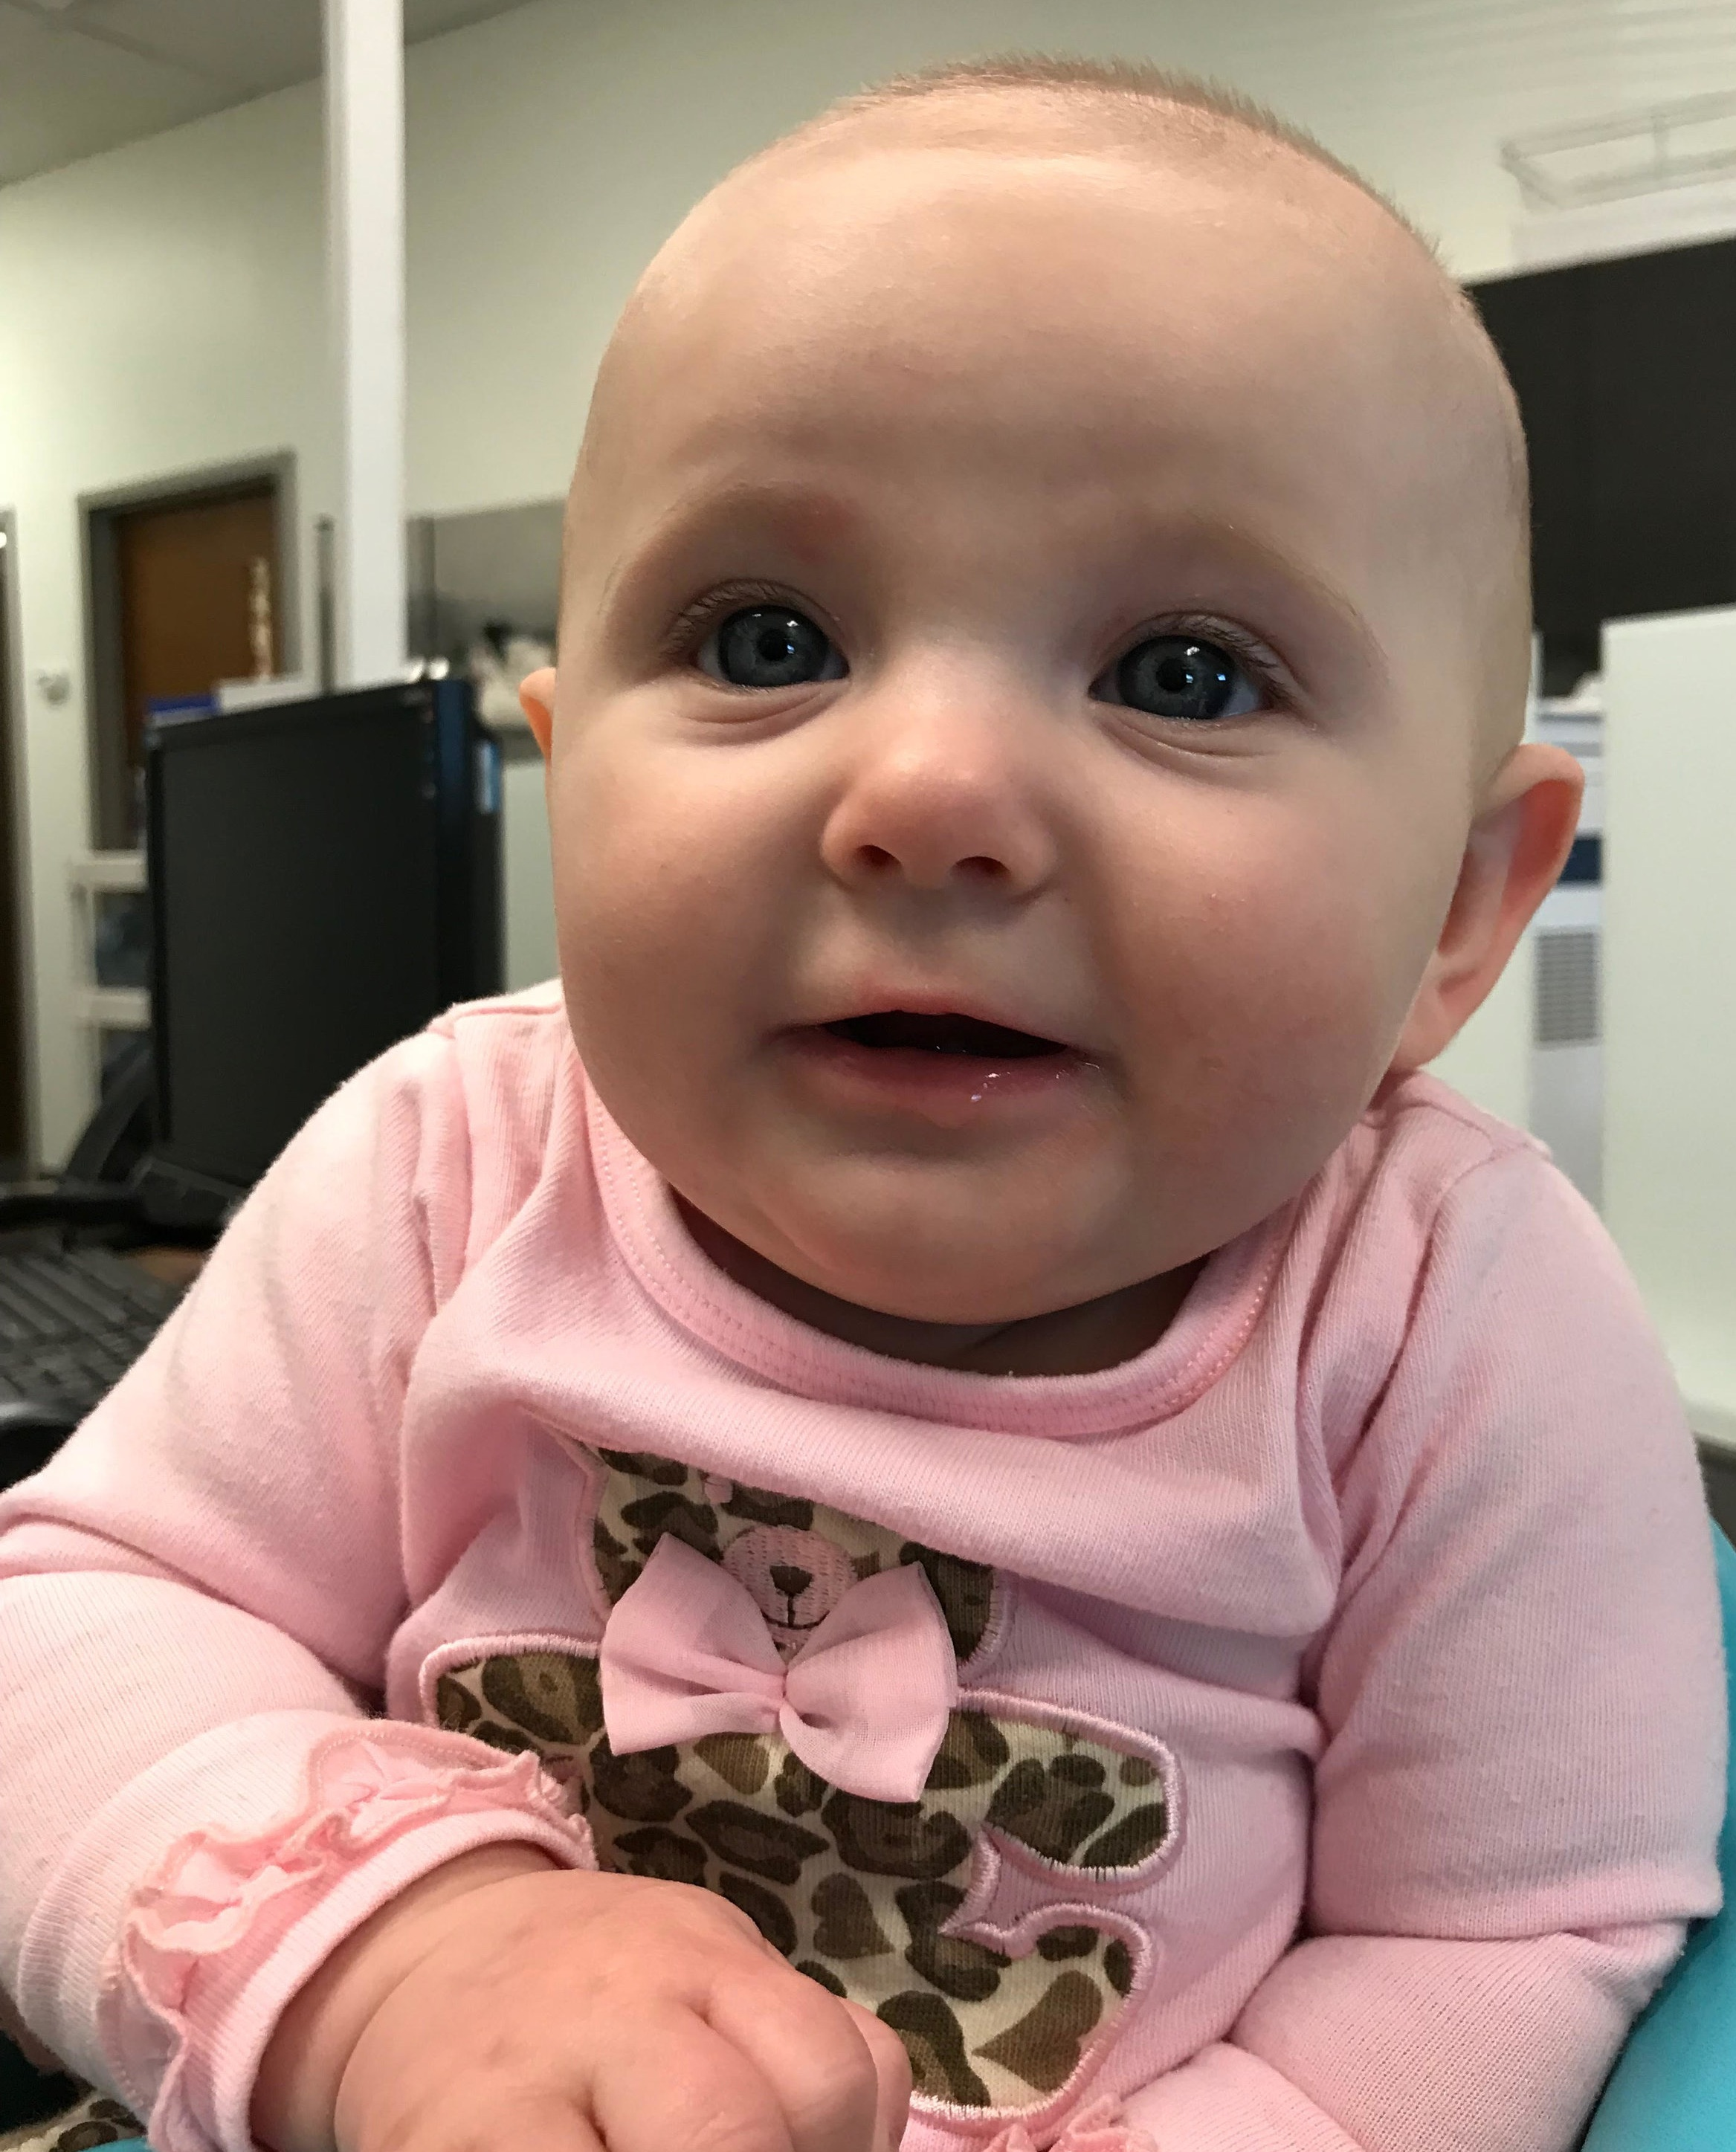 My daughter, the newest office baby, at 4 months old.